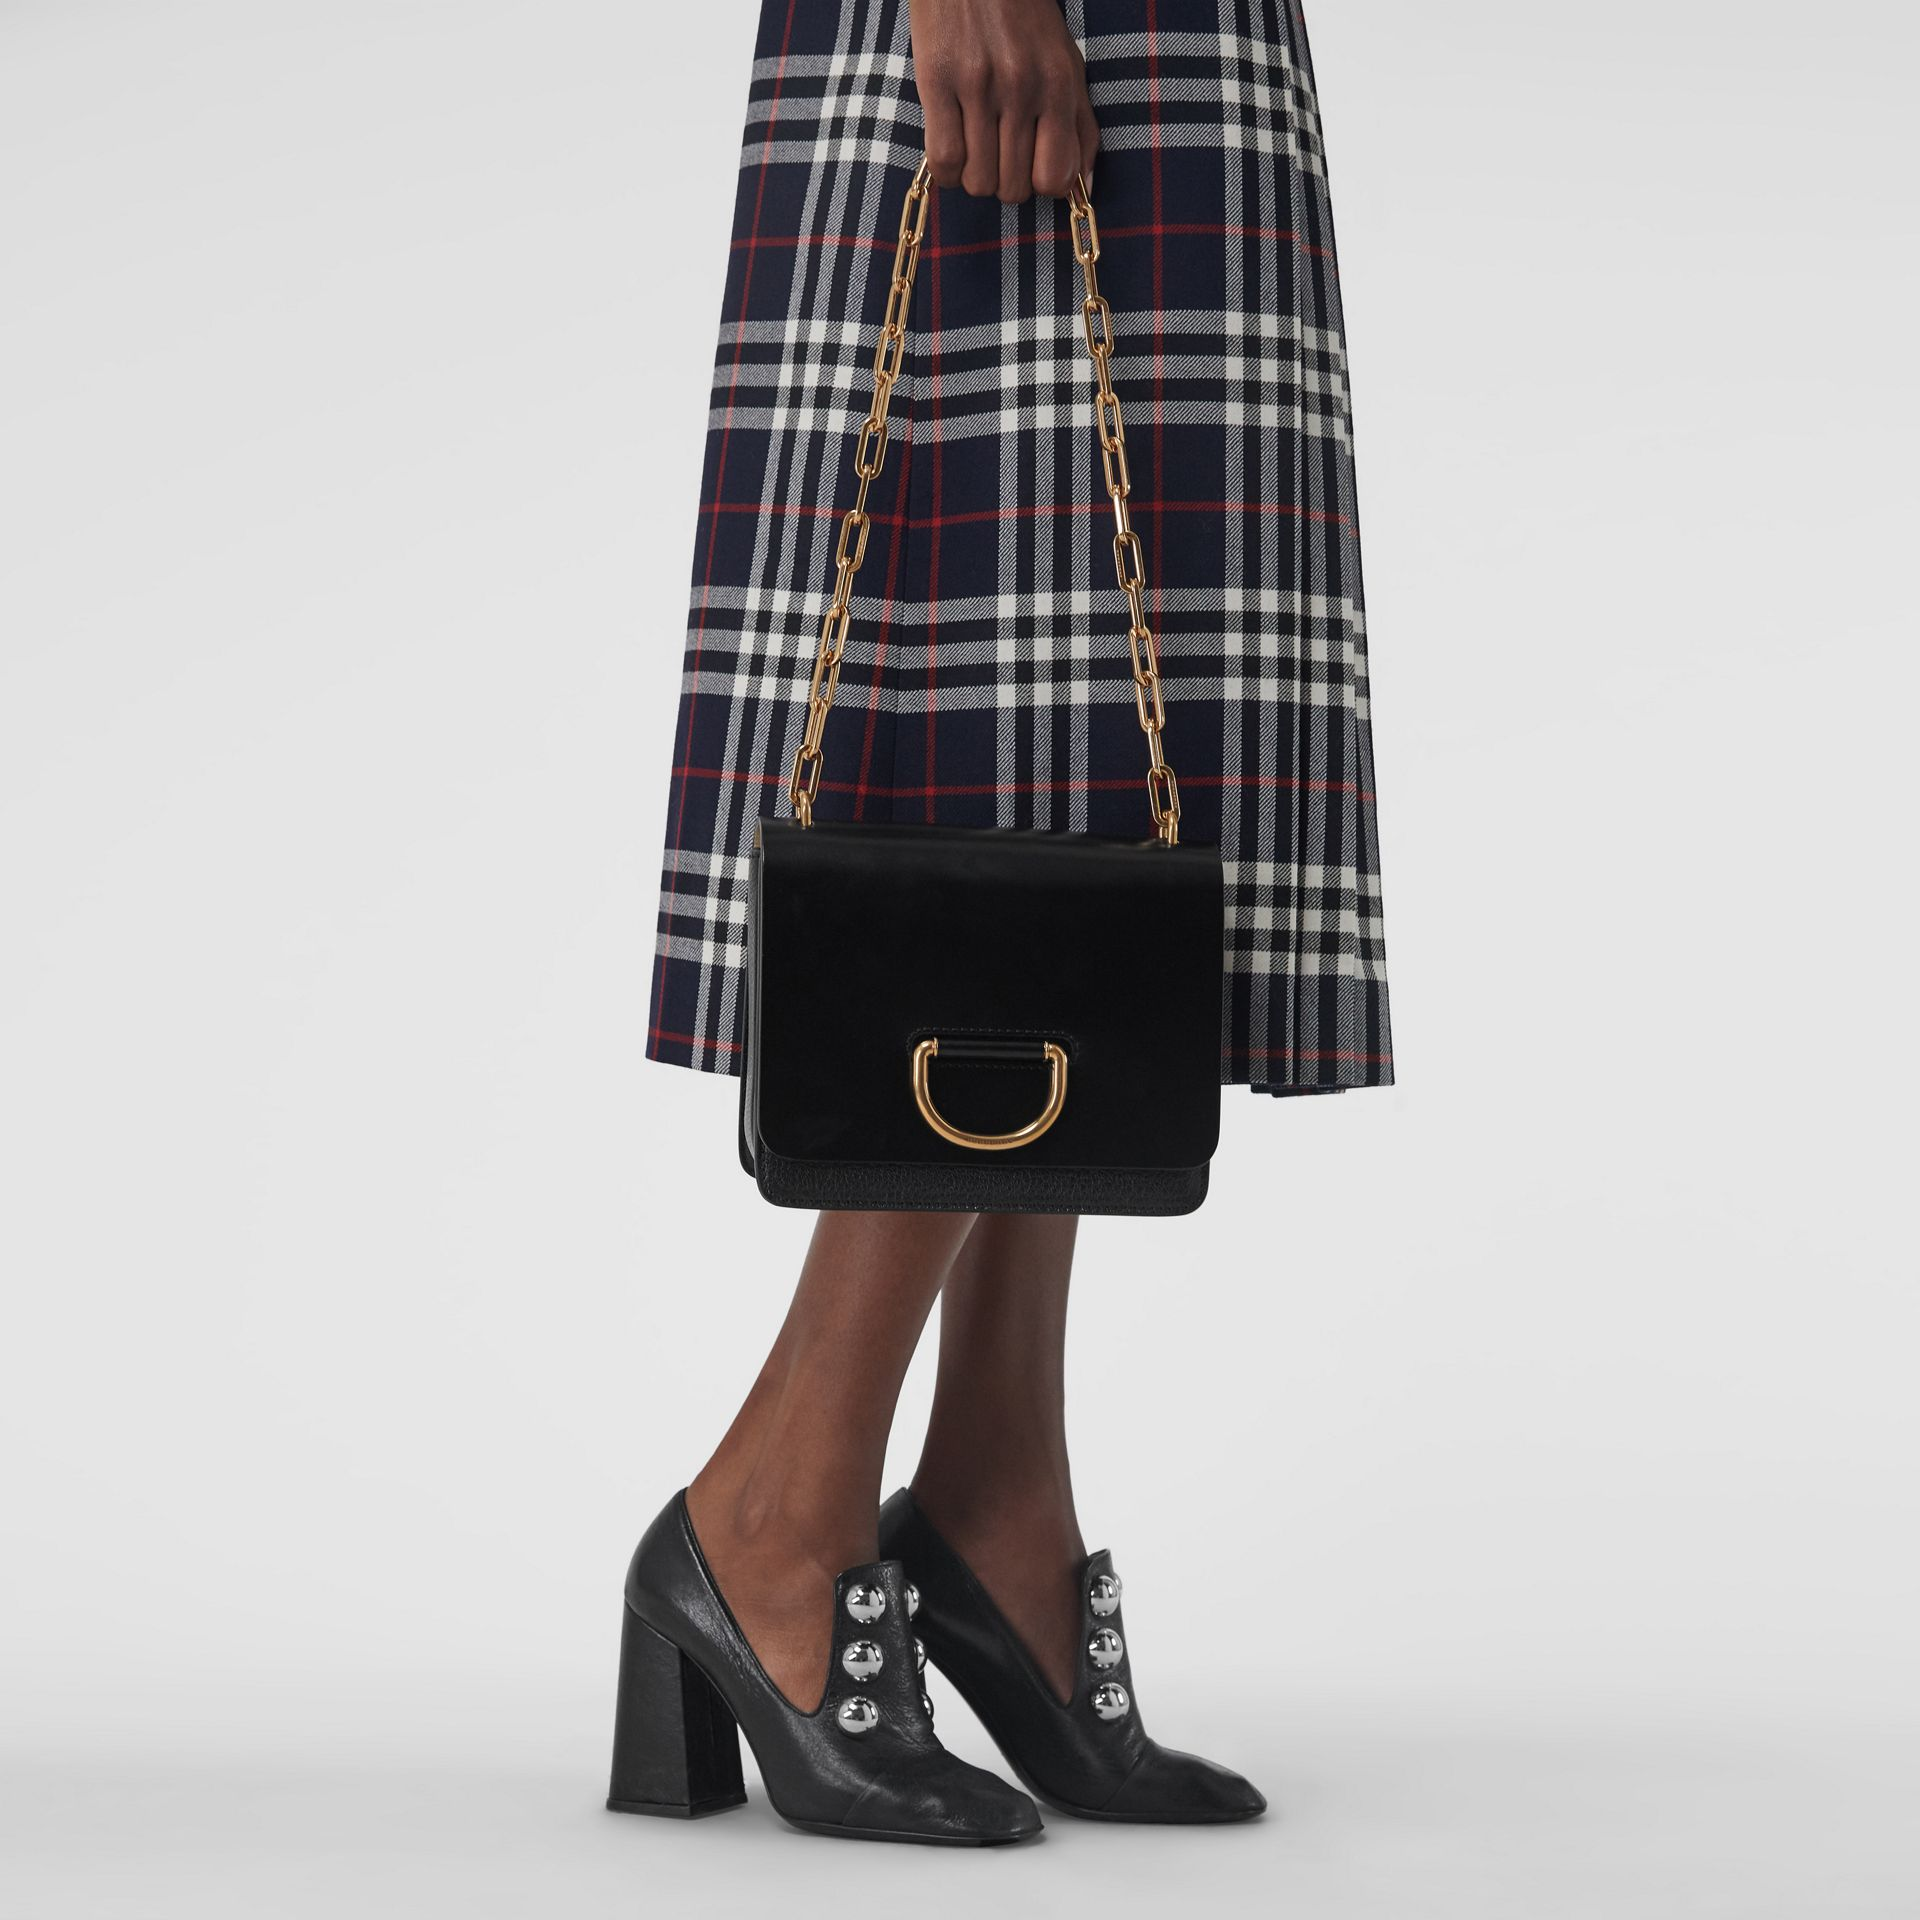 Petit sac The D-ring en cuir (Noir) - Femme | Burberry Canada - photo de la galerie 3